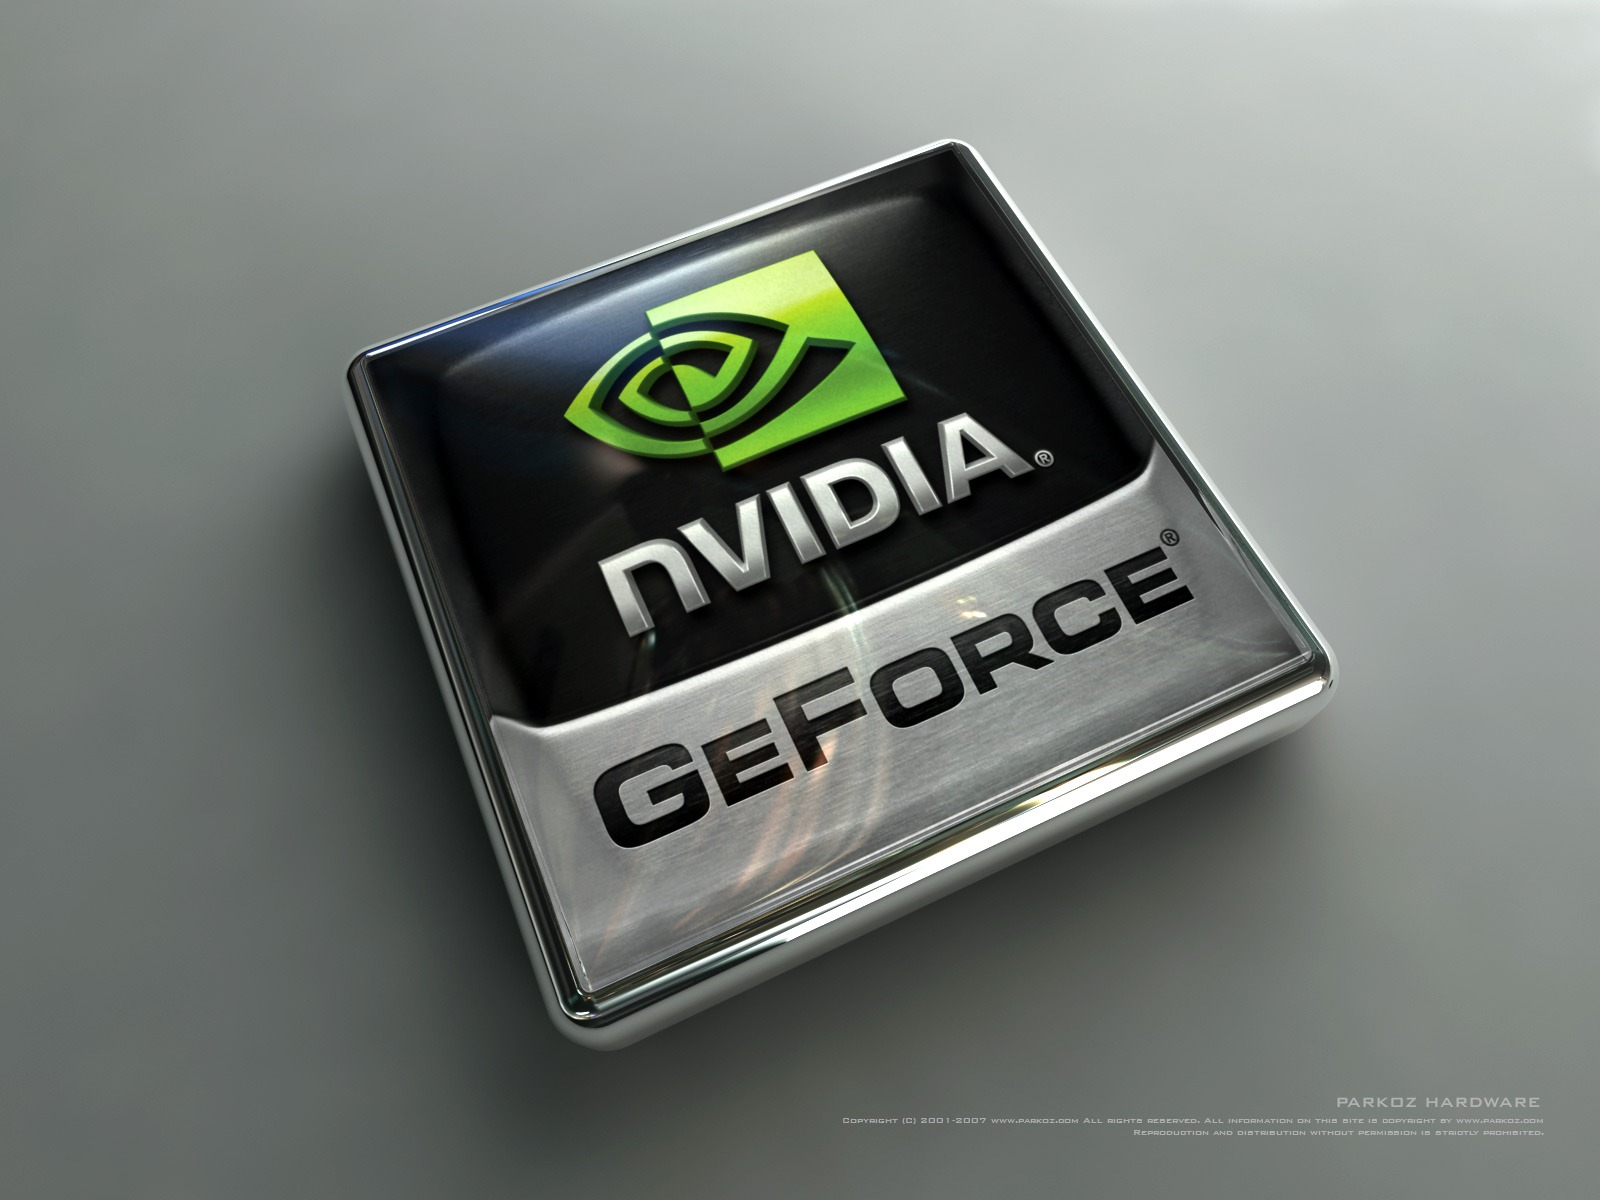 Драйвер для видеокарты nvidia geforce gt 240 для windows 10 32